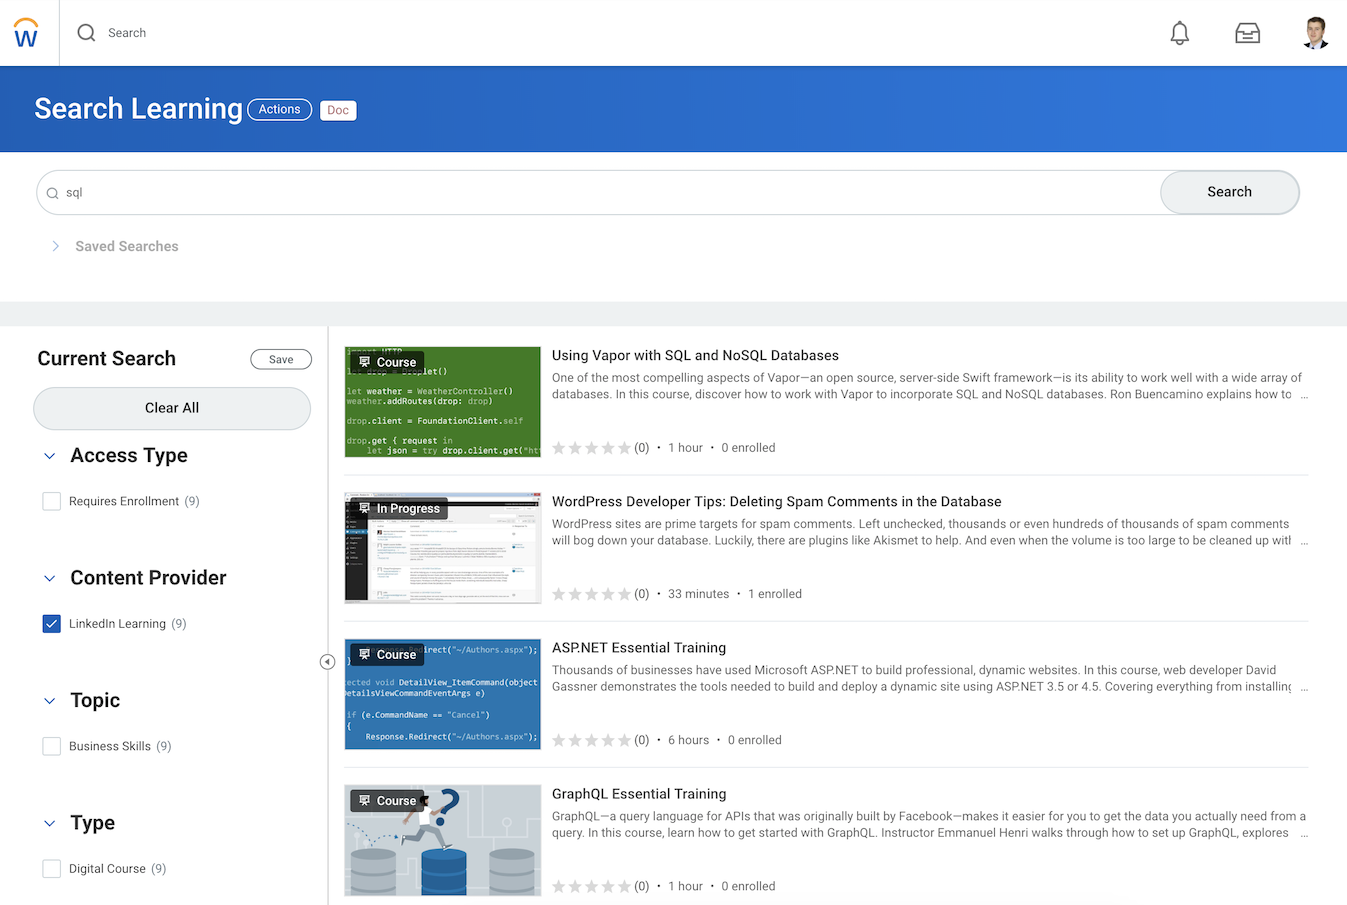 Workday Marketplace